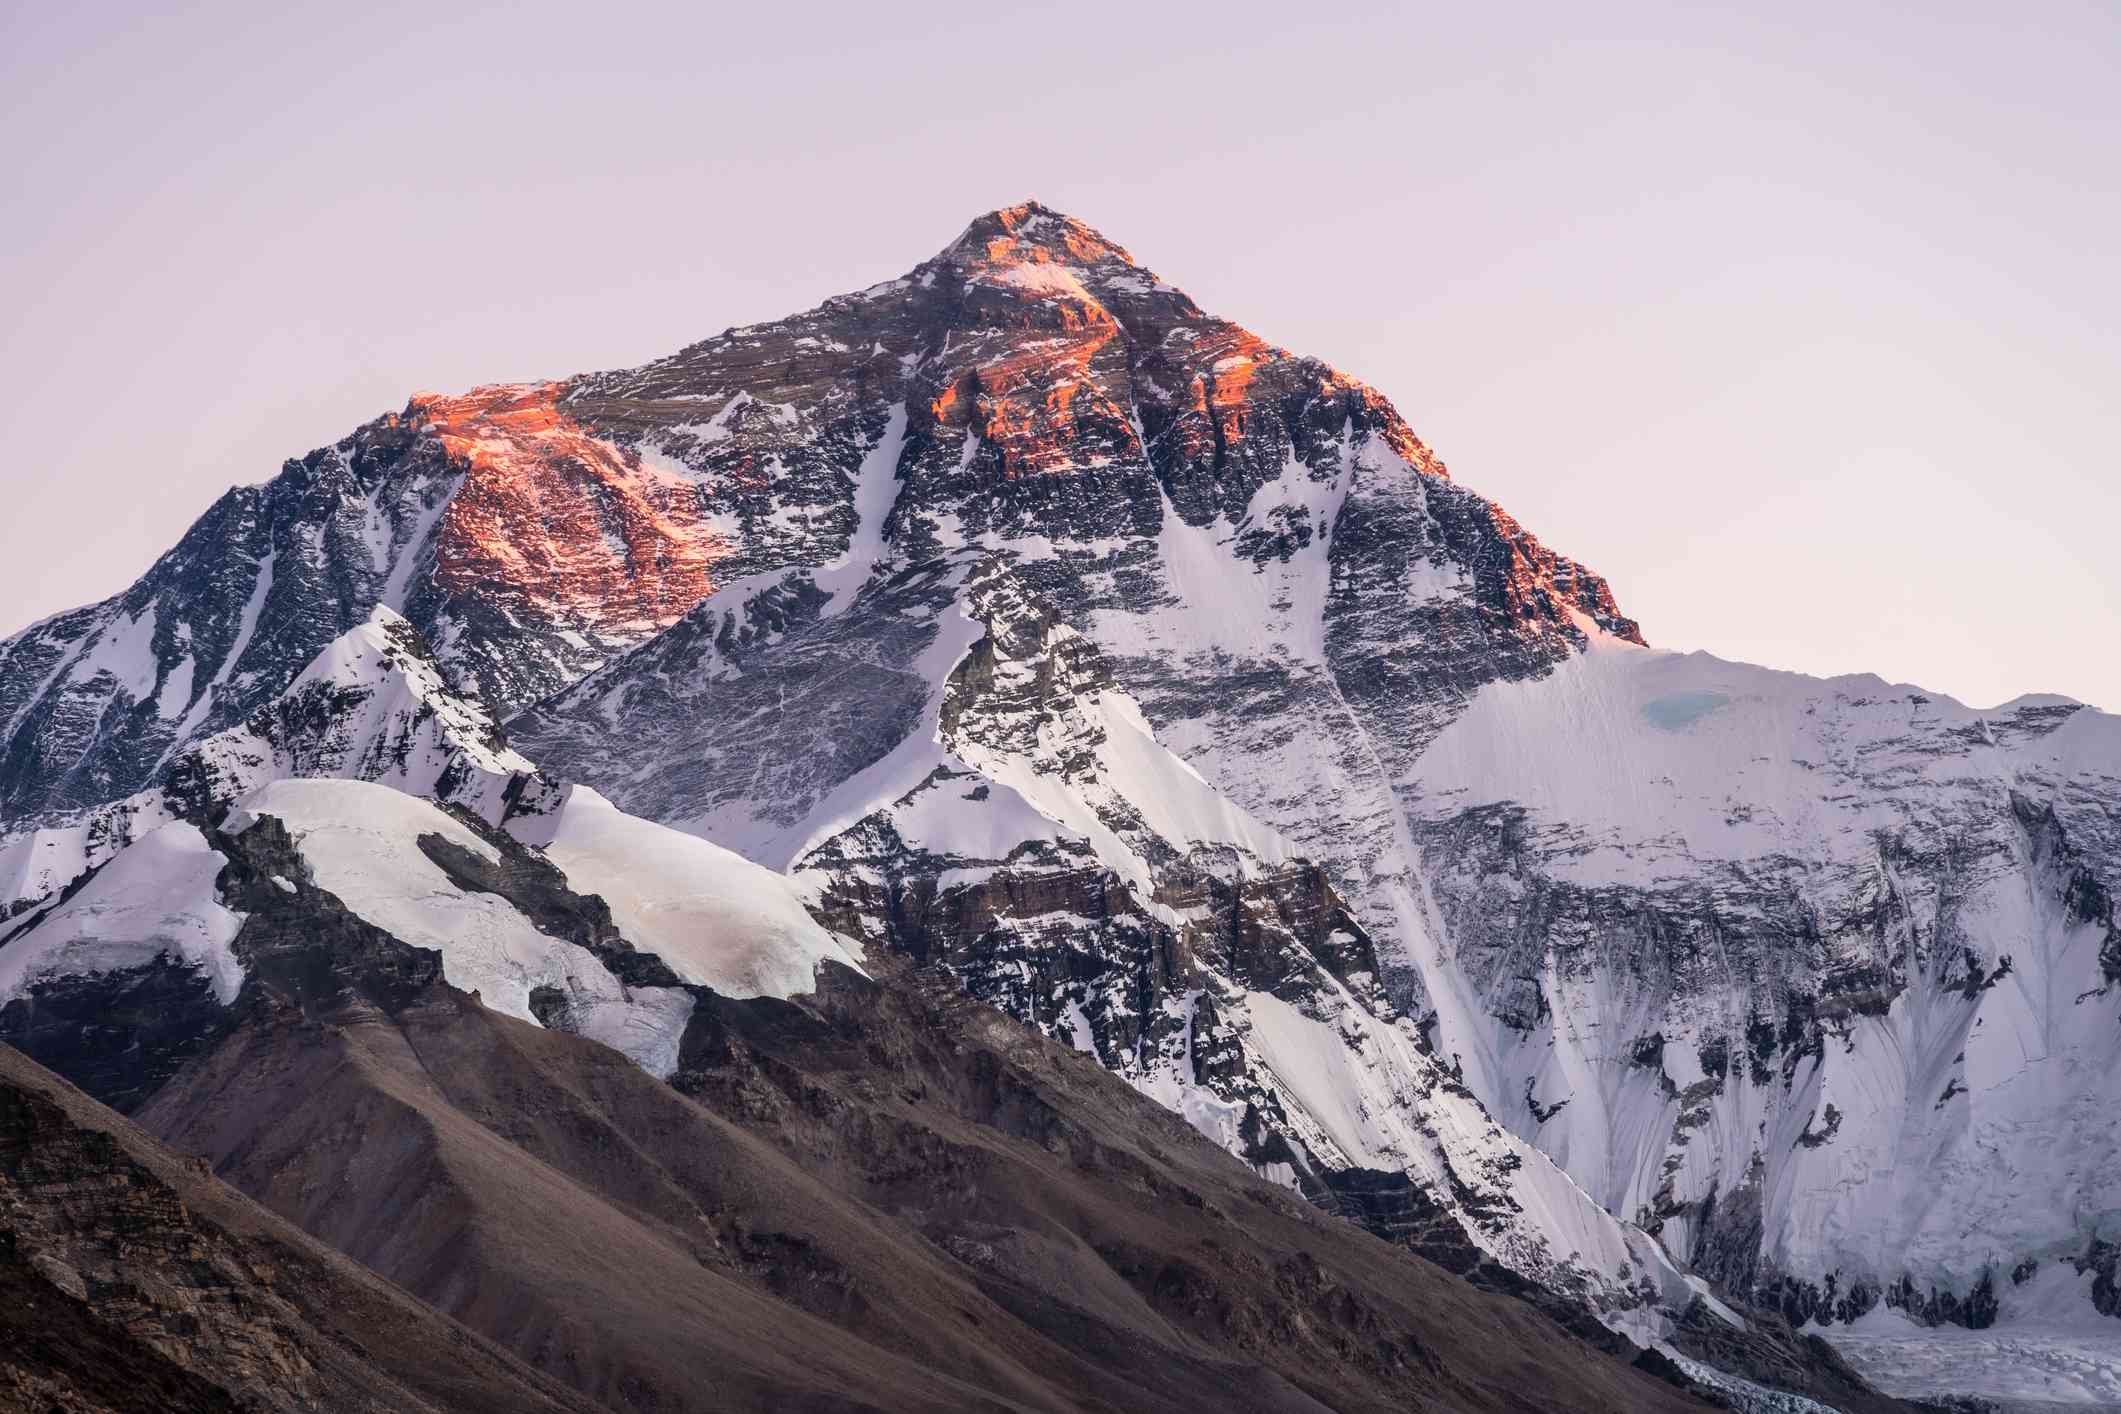 View of Mount Everest from Tibet